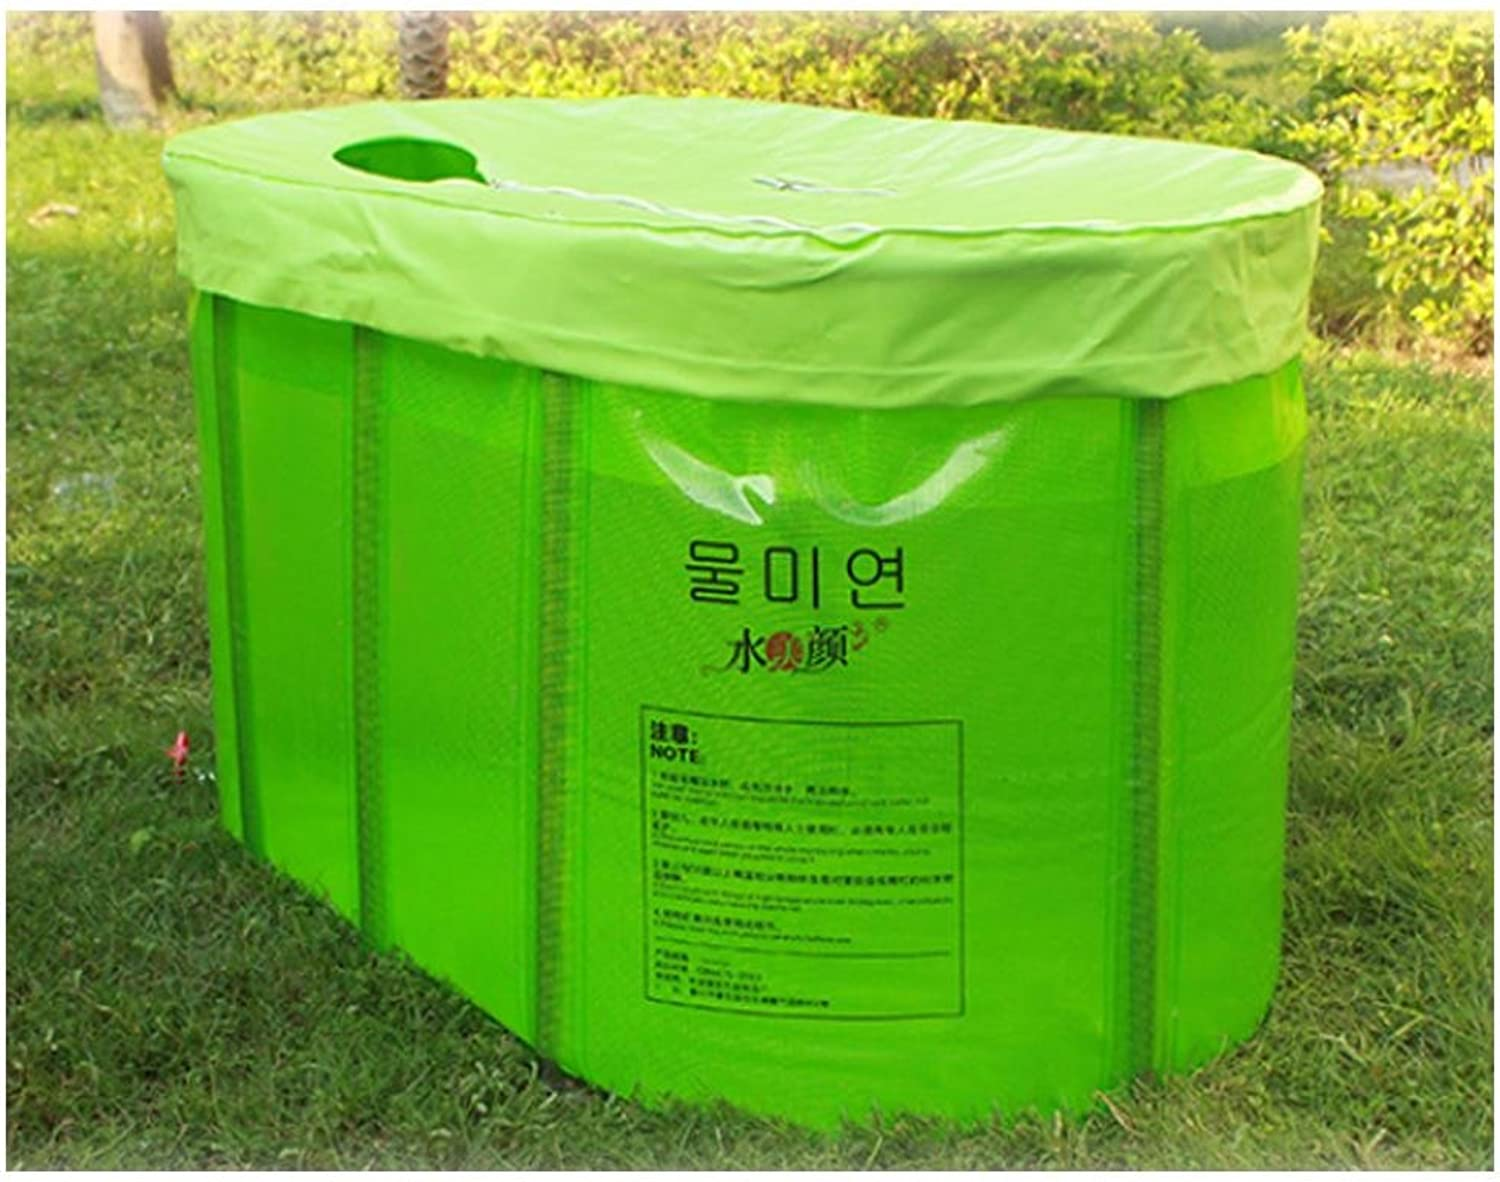 YFCNon-inflatable twin folding adult bath tub bathtub barrel barrel bath barrel , green